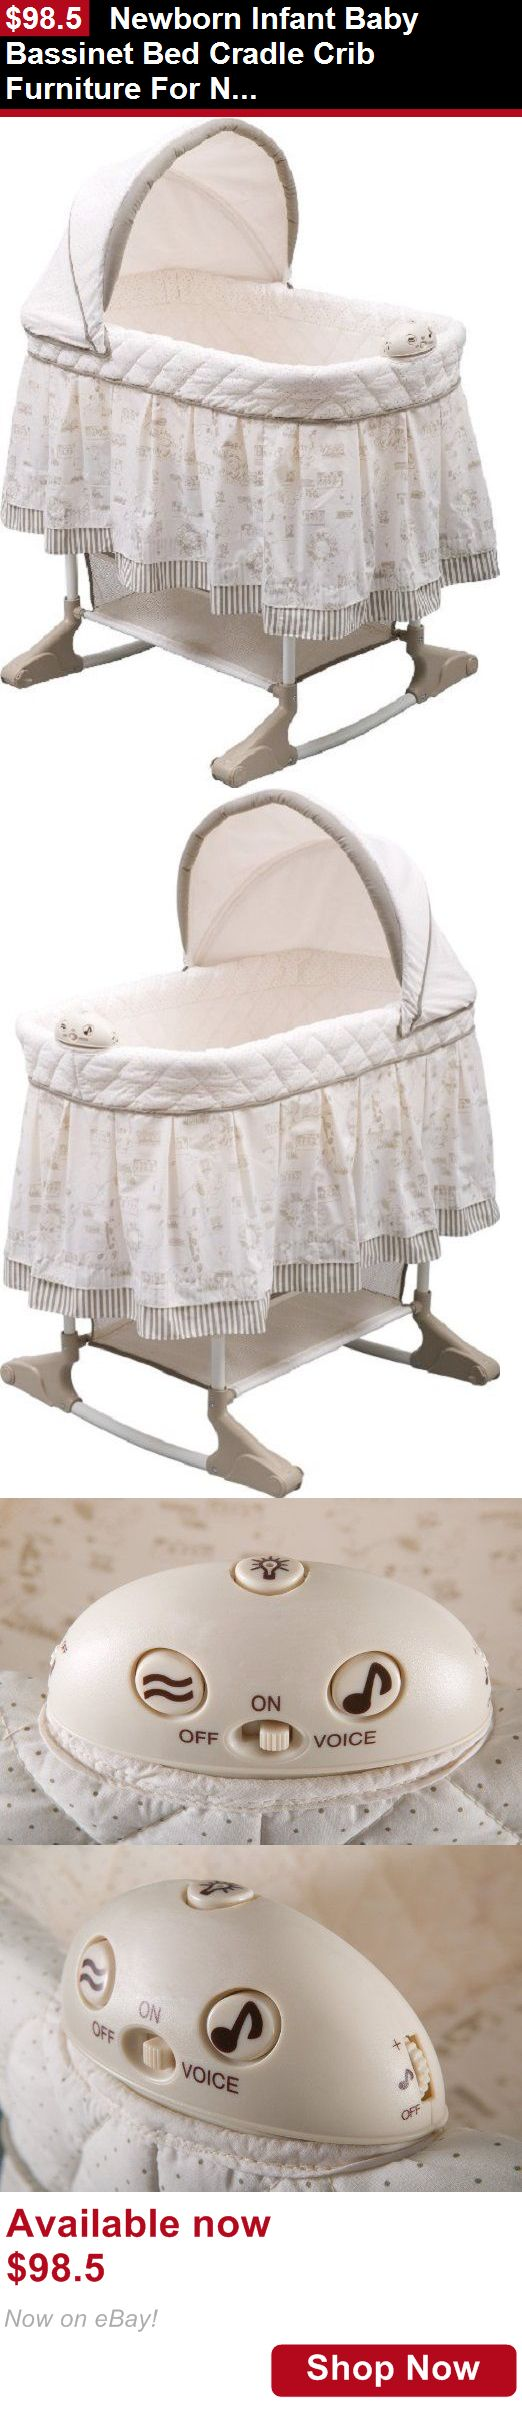 Bassinets And Cradles: Newborn Infant Baby Bassinet Bed Cradle Crib Furniture For Nursery Rocking White BUY IT NOW ONLY: $98.5